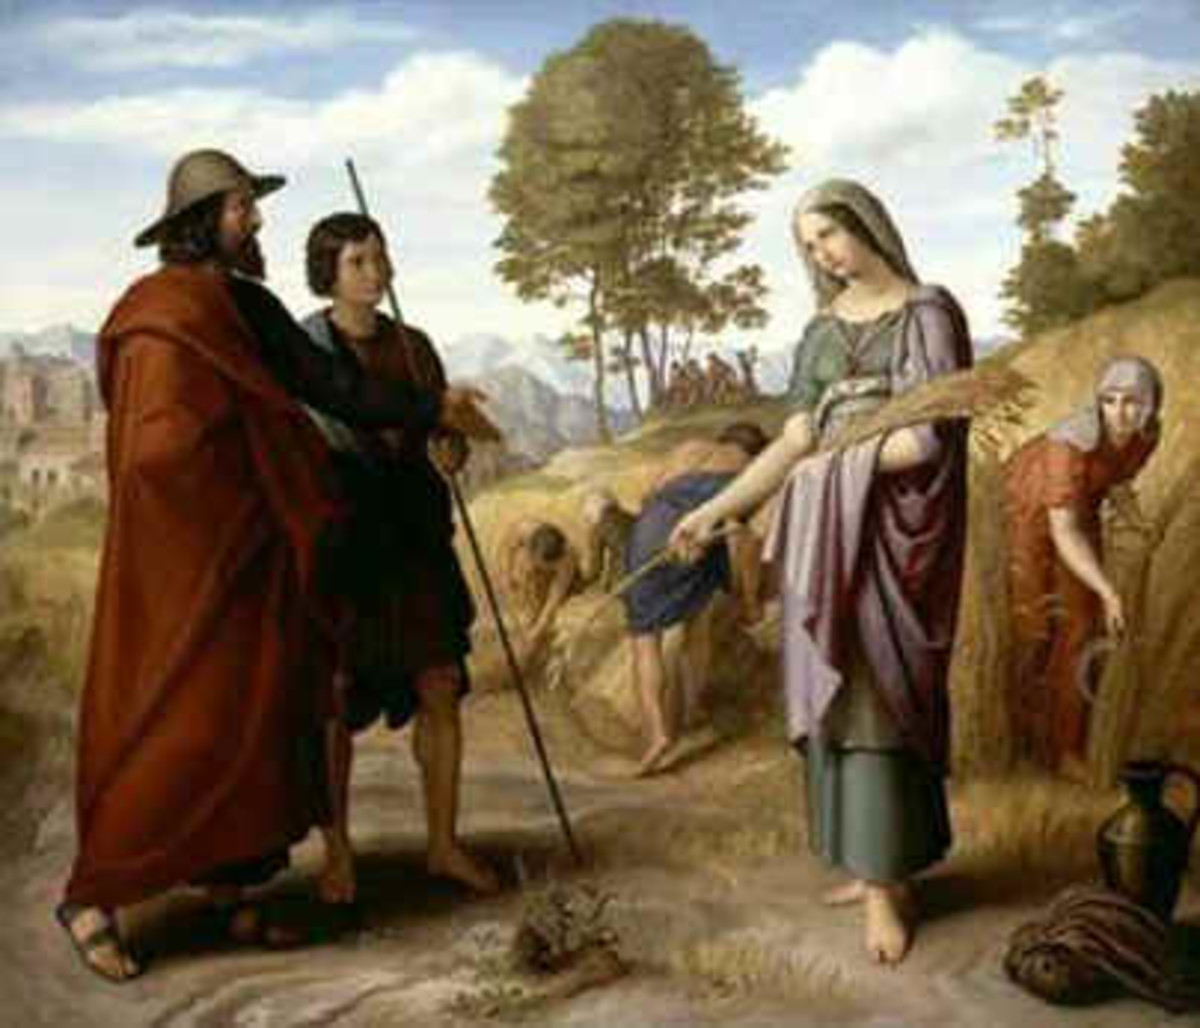 Painter: Julius Schnoor von Carolsfeld  Ruth in Boaz's field.  Date 1828